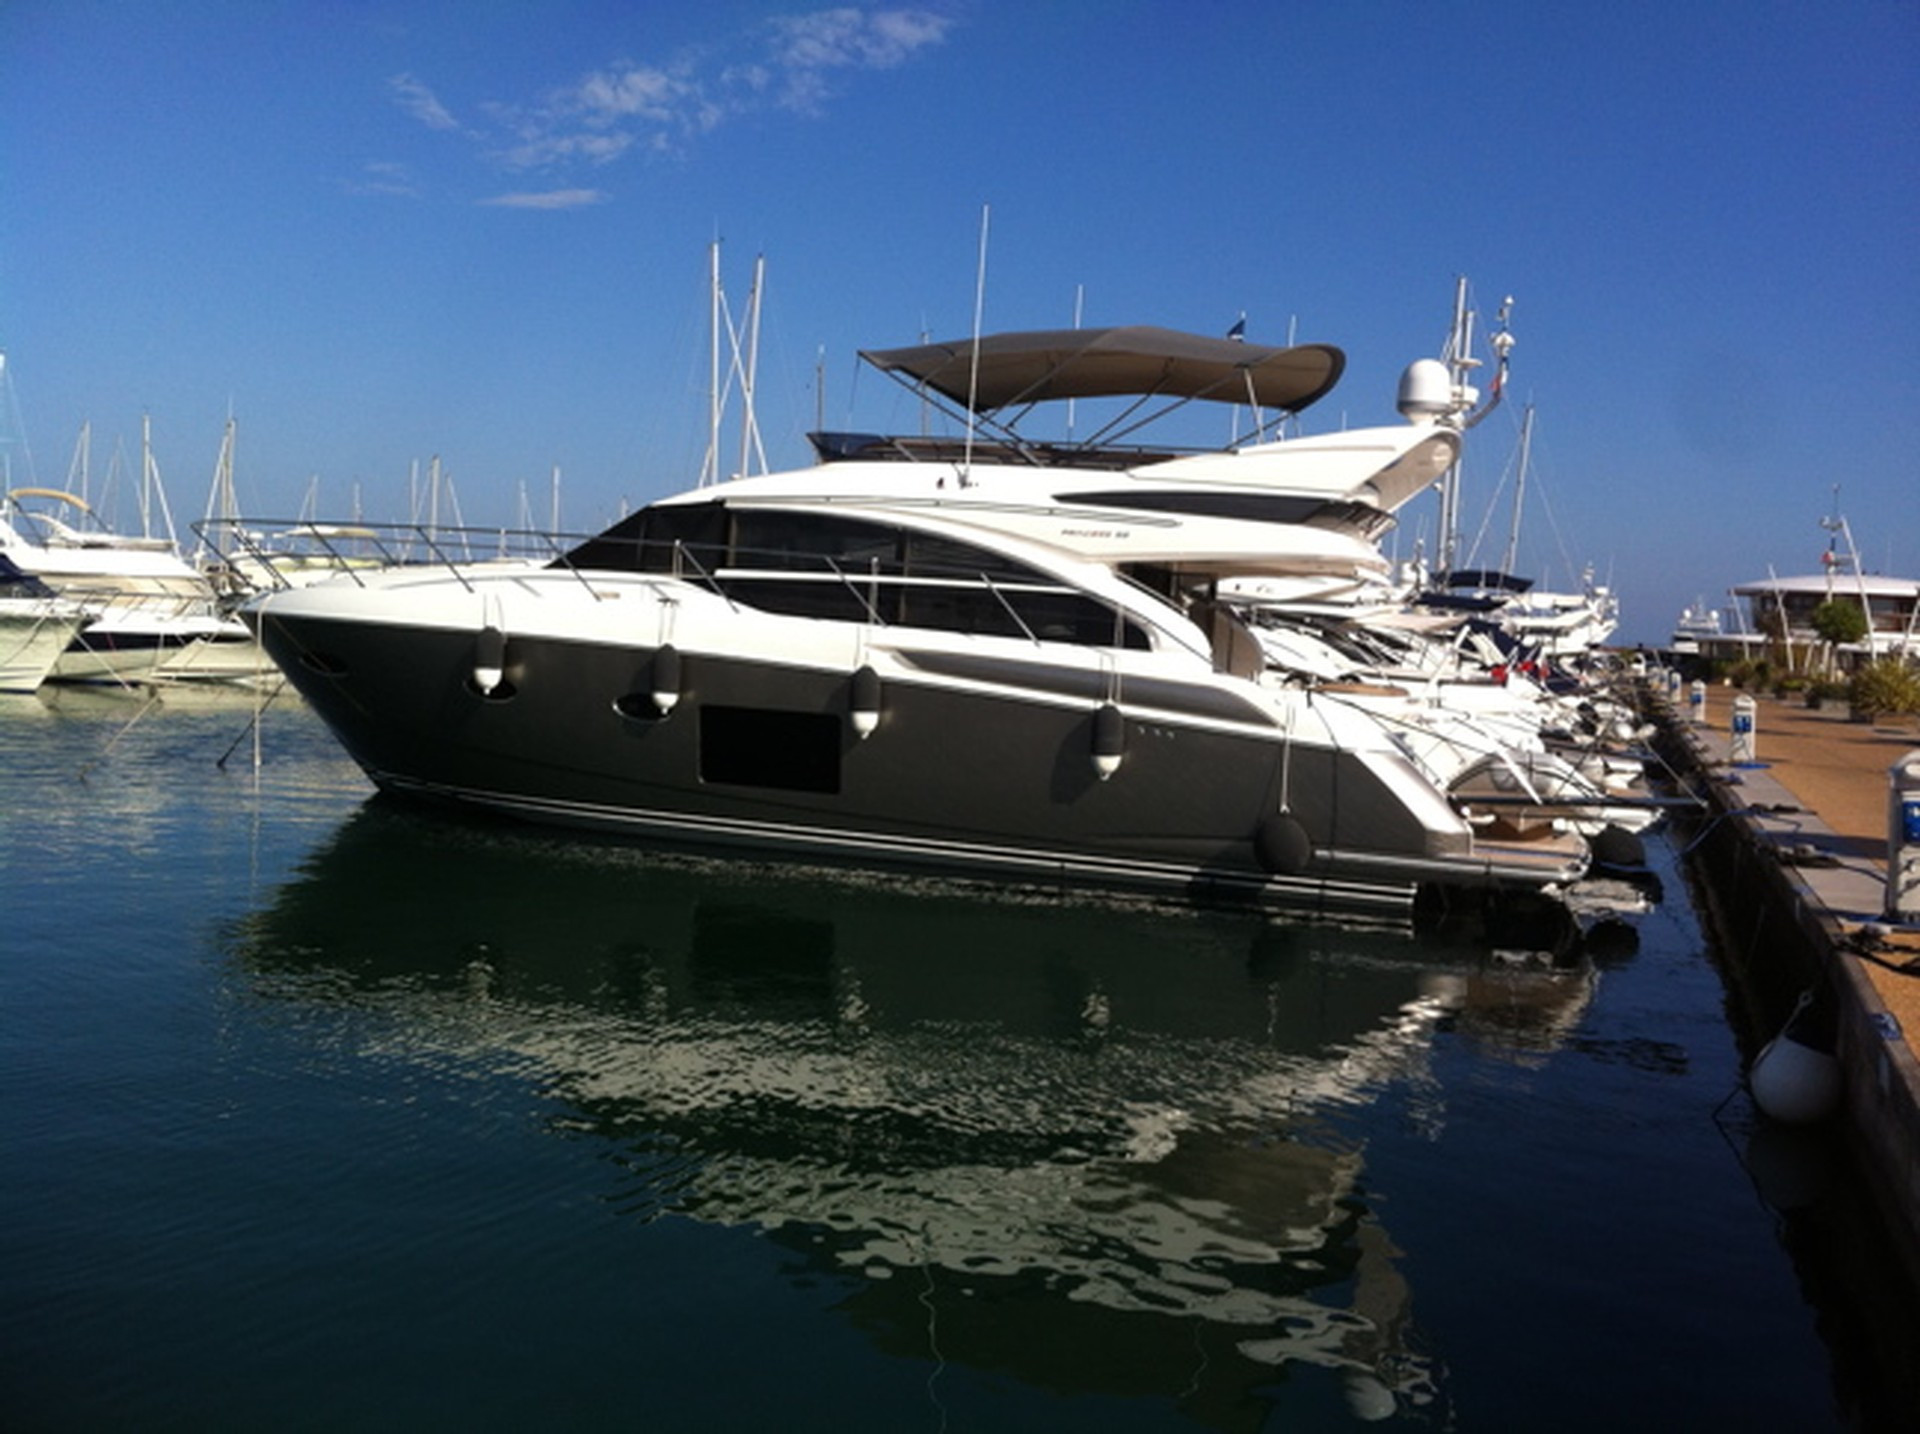 Taste The Best Of Yachting With A Used Princess Yacht